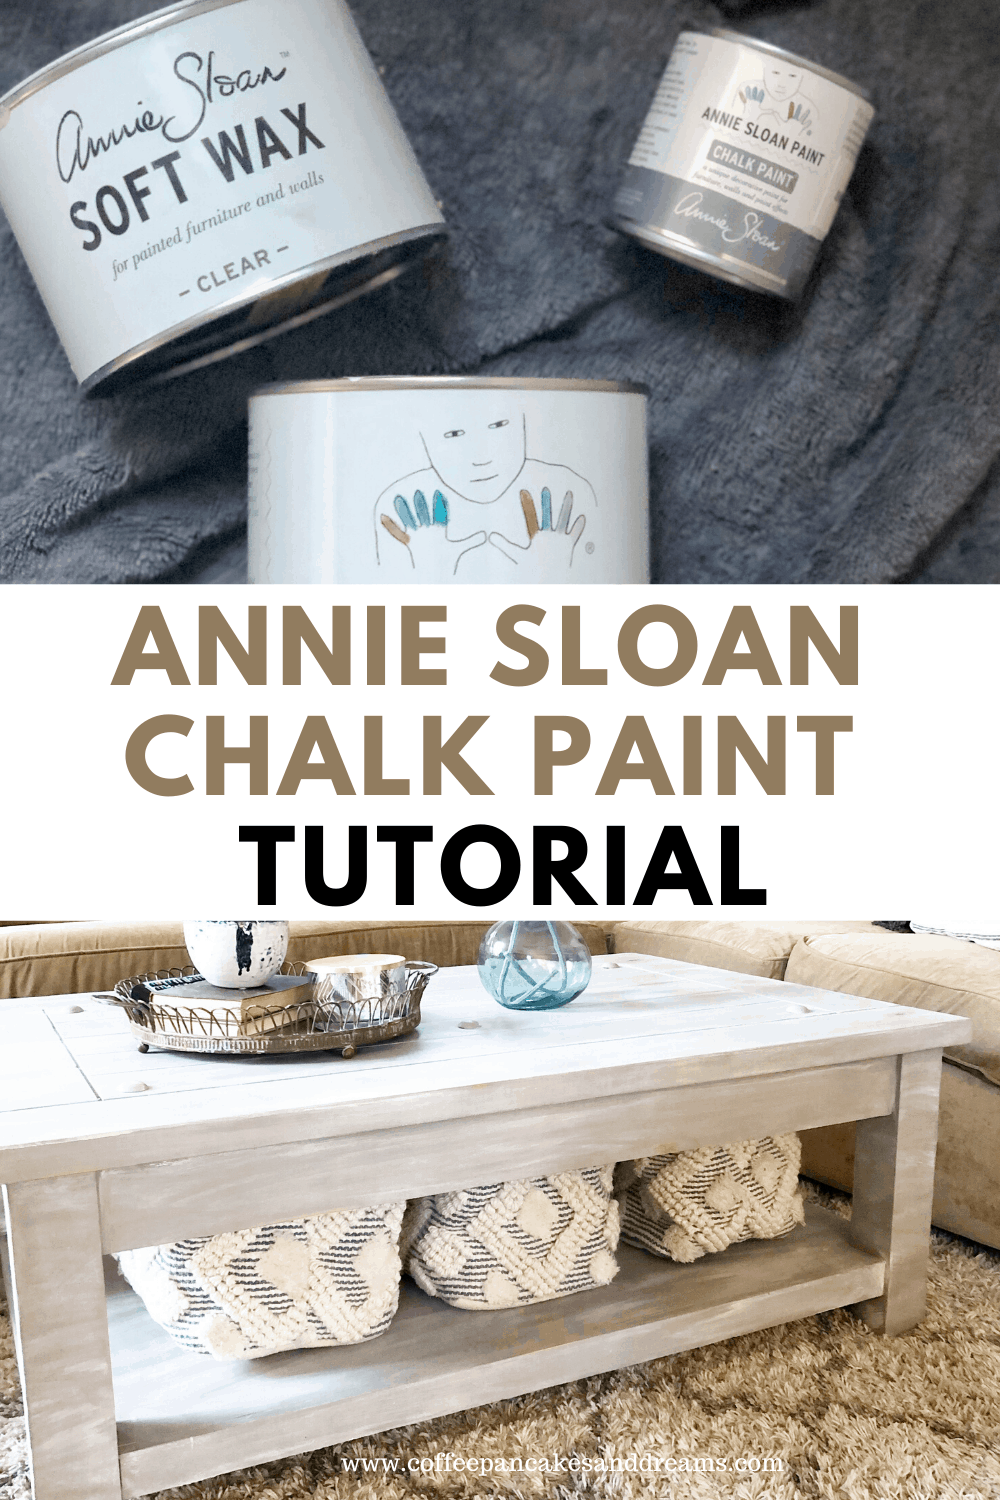 How to Use Annie Sloan Chalk Paint on Old Furniture